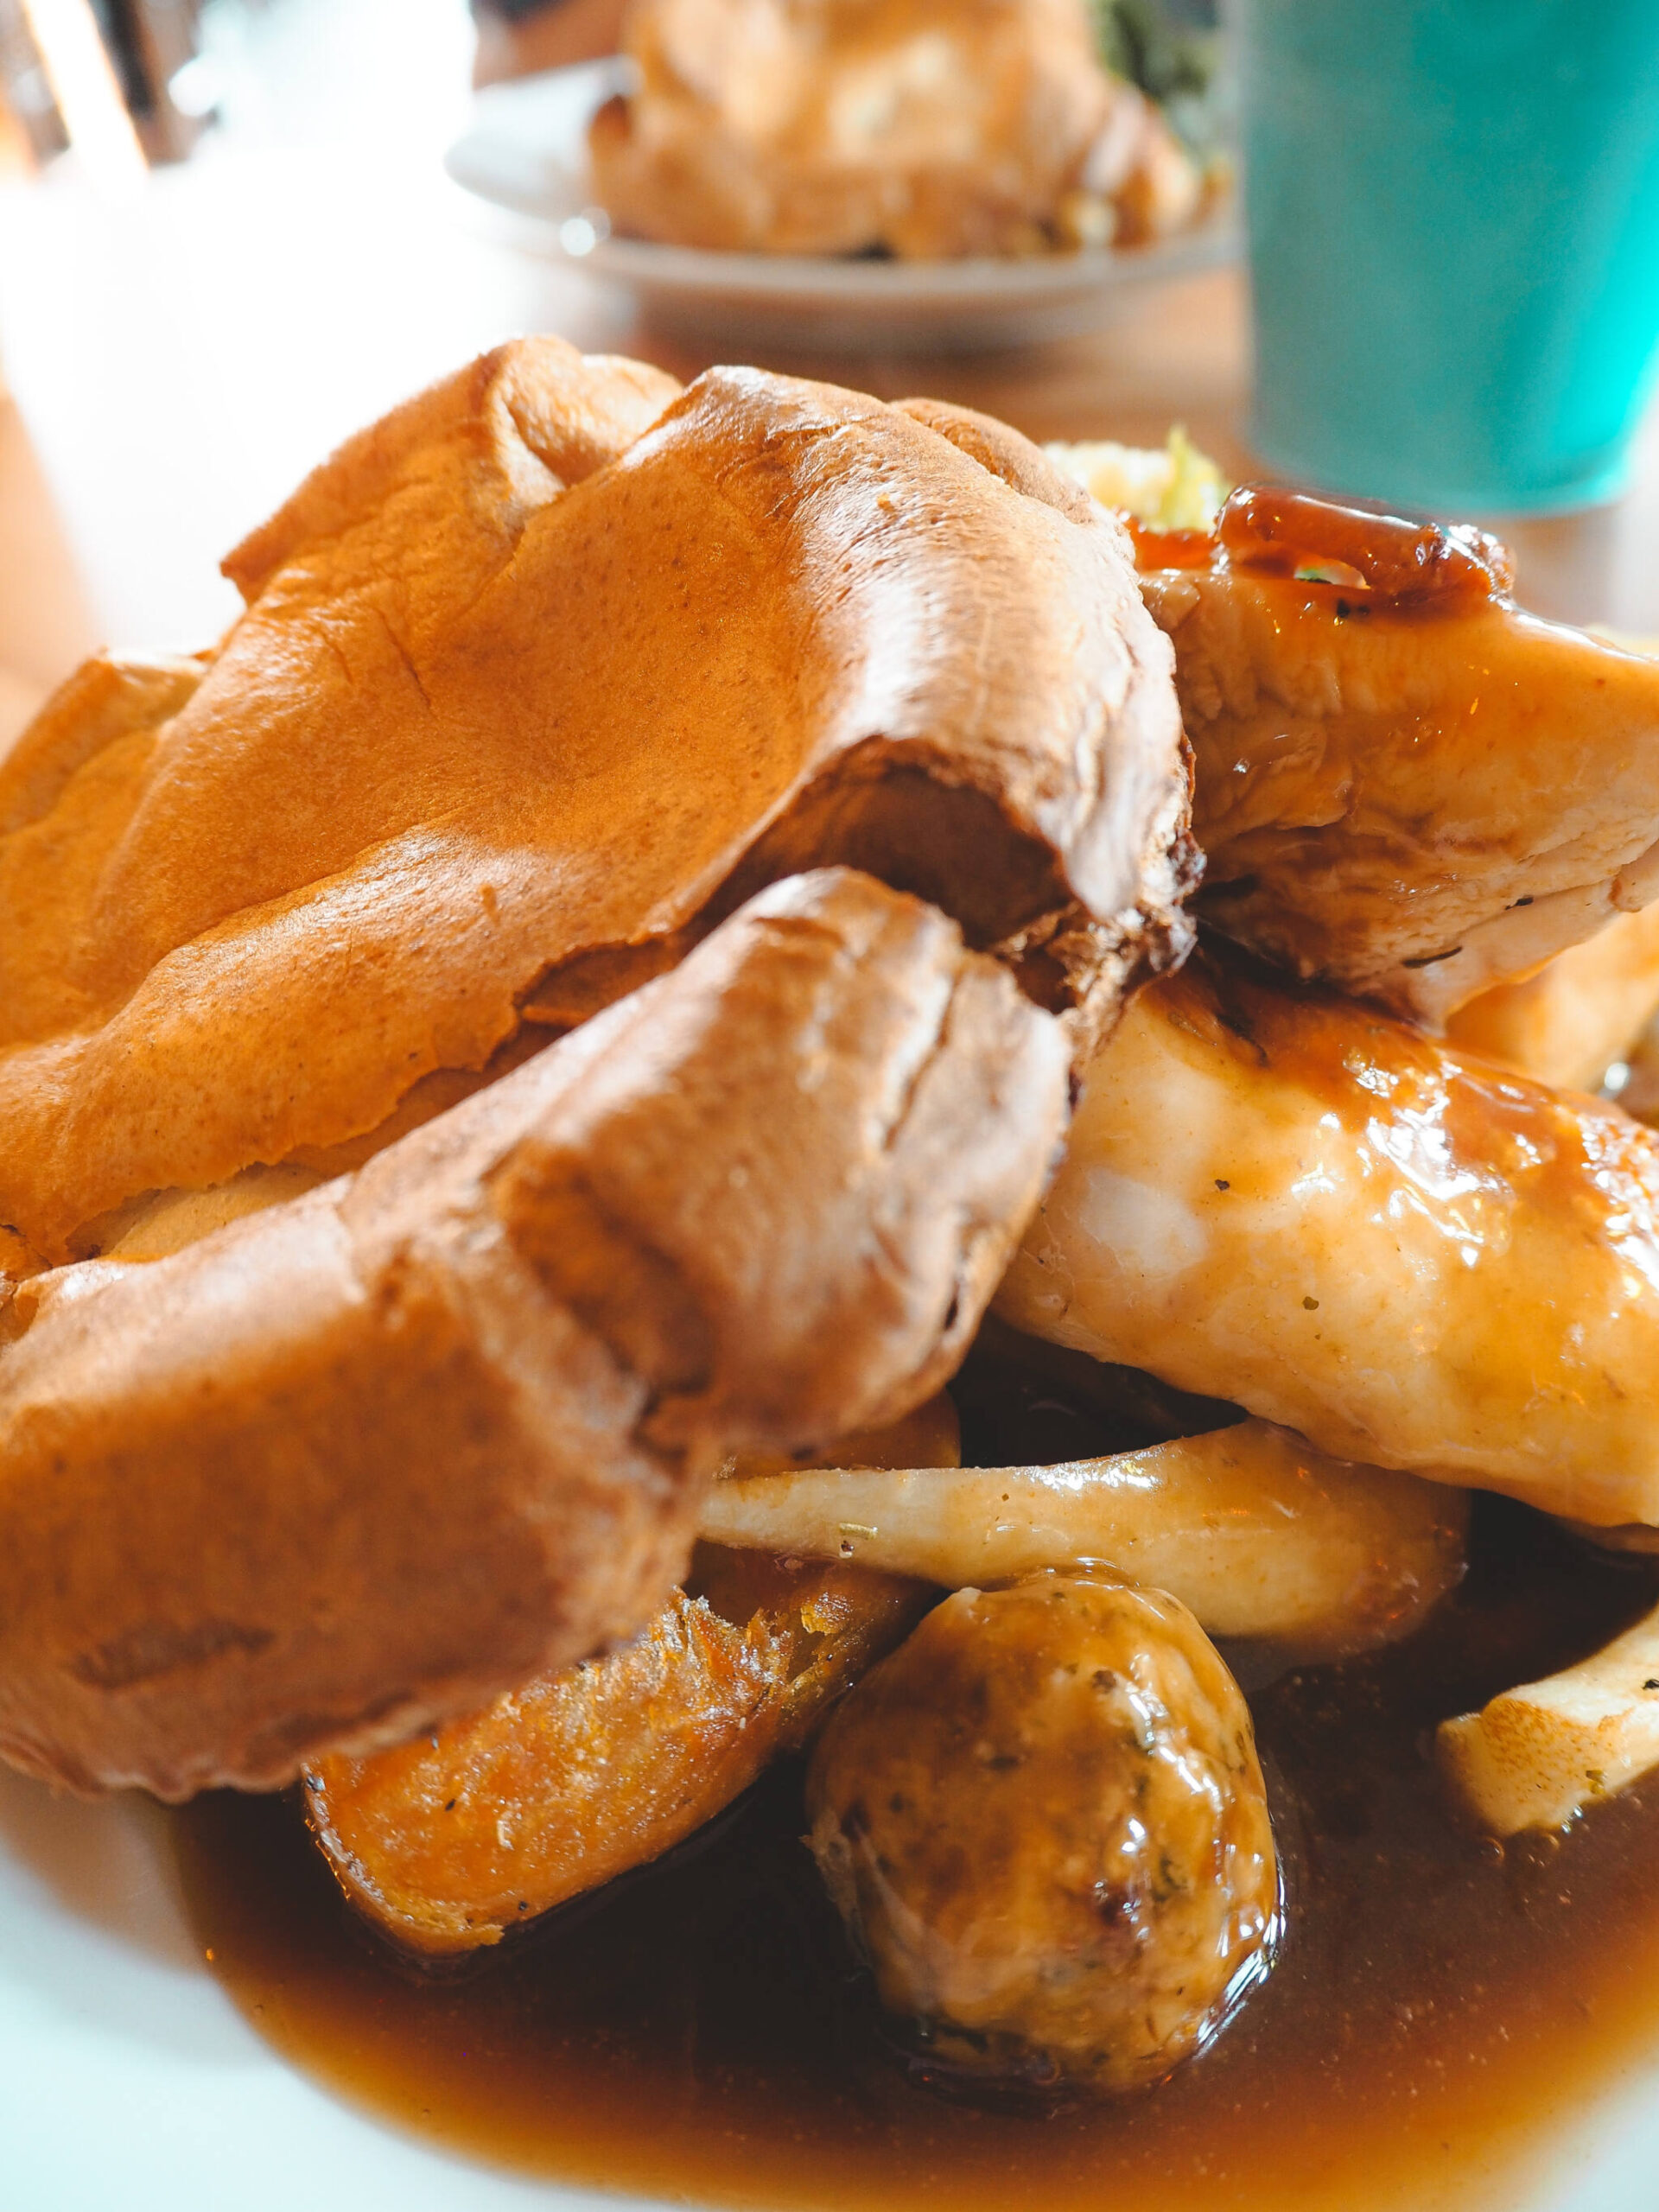 Yorkshire Pudding, potatoes and chicken with lashings of gravy